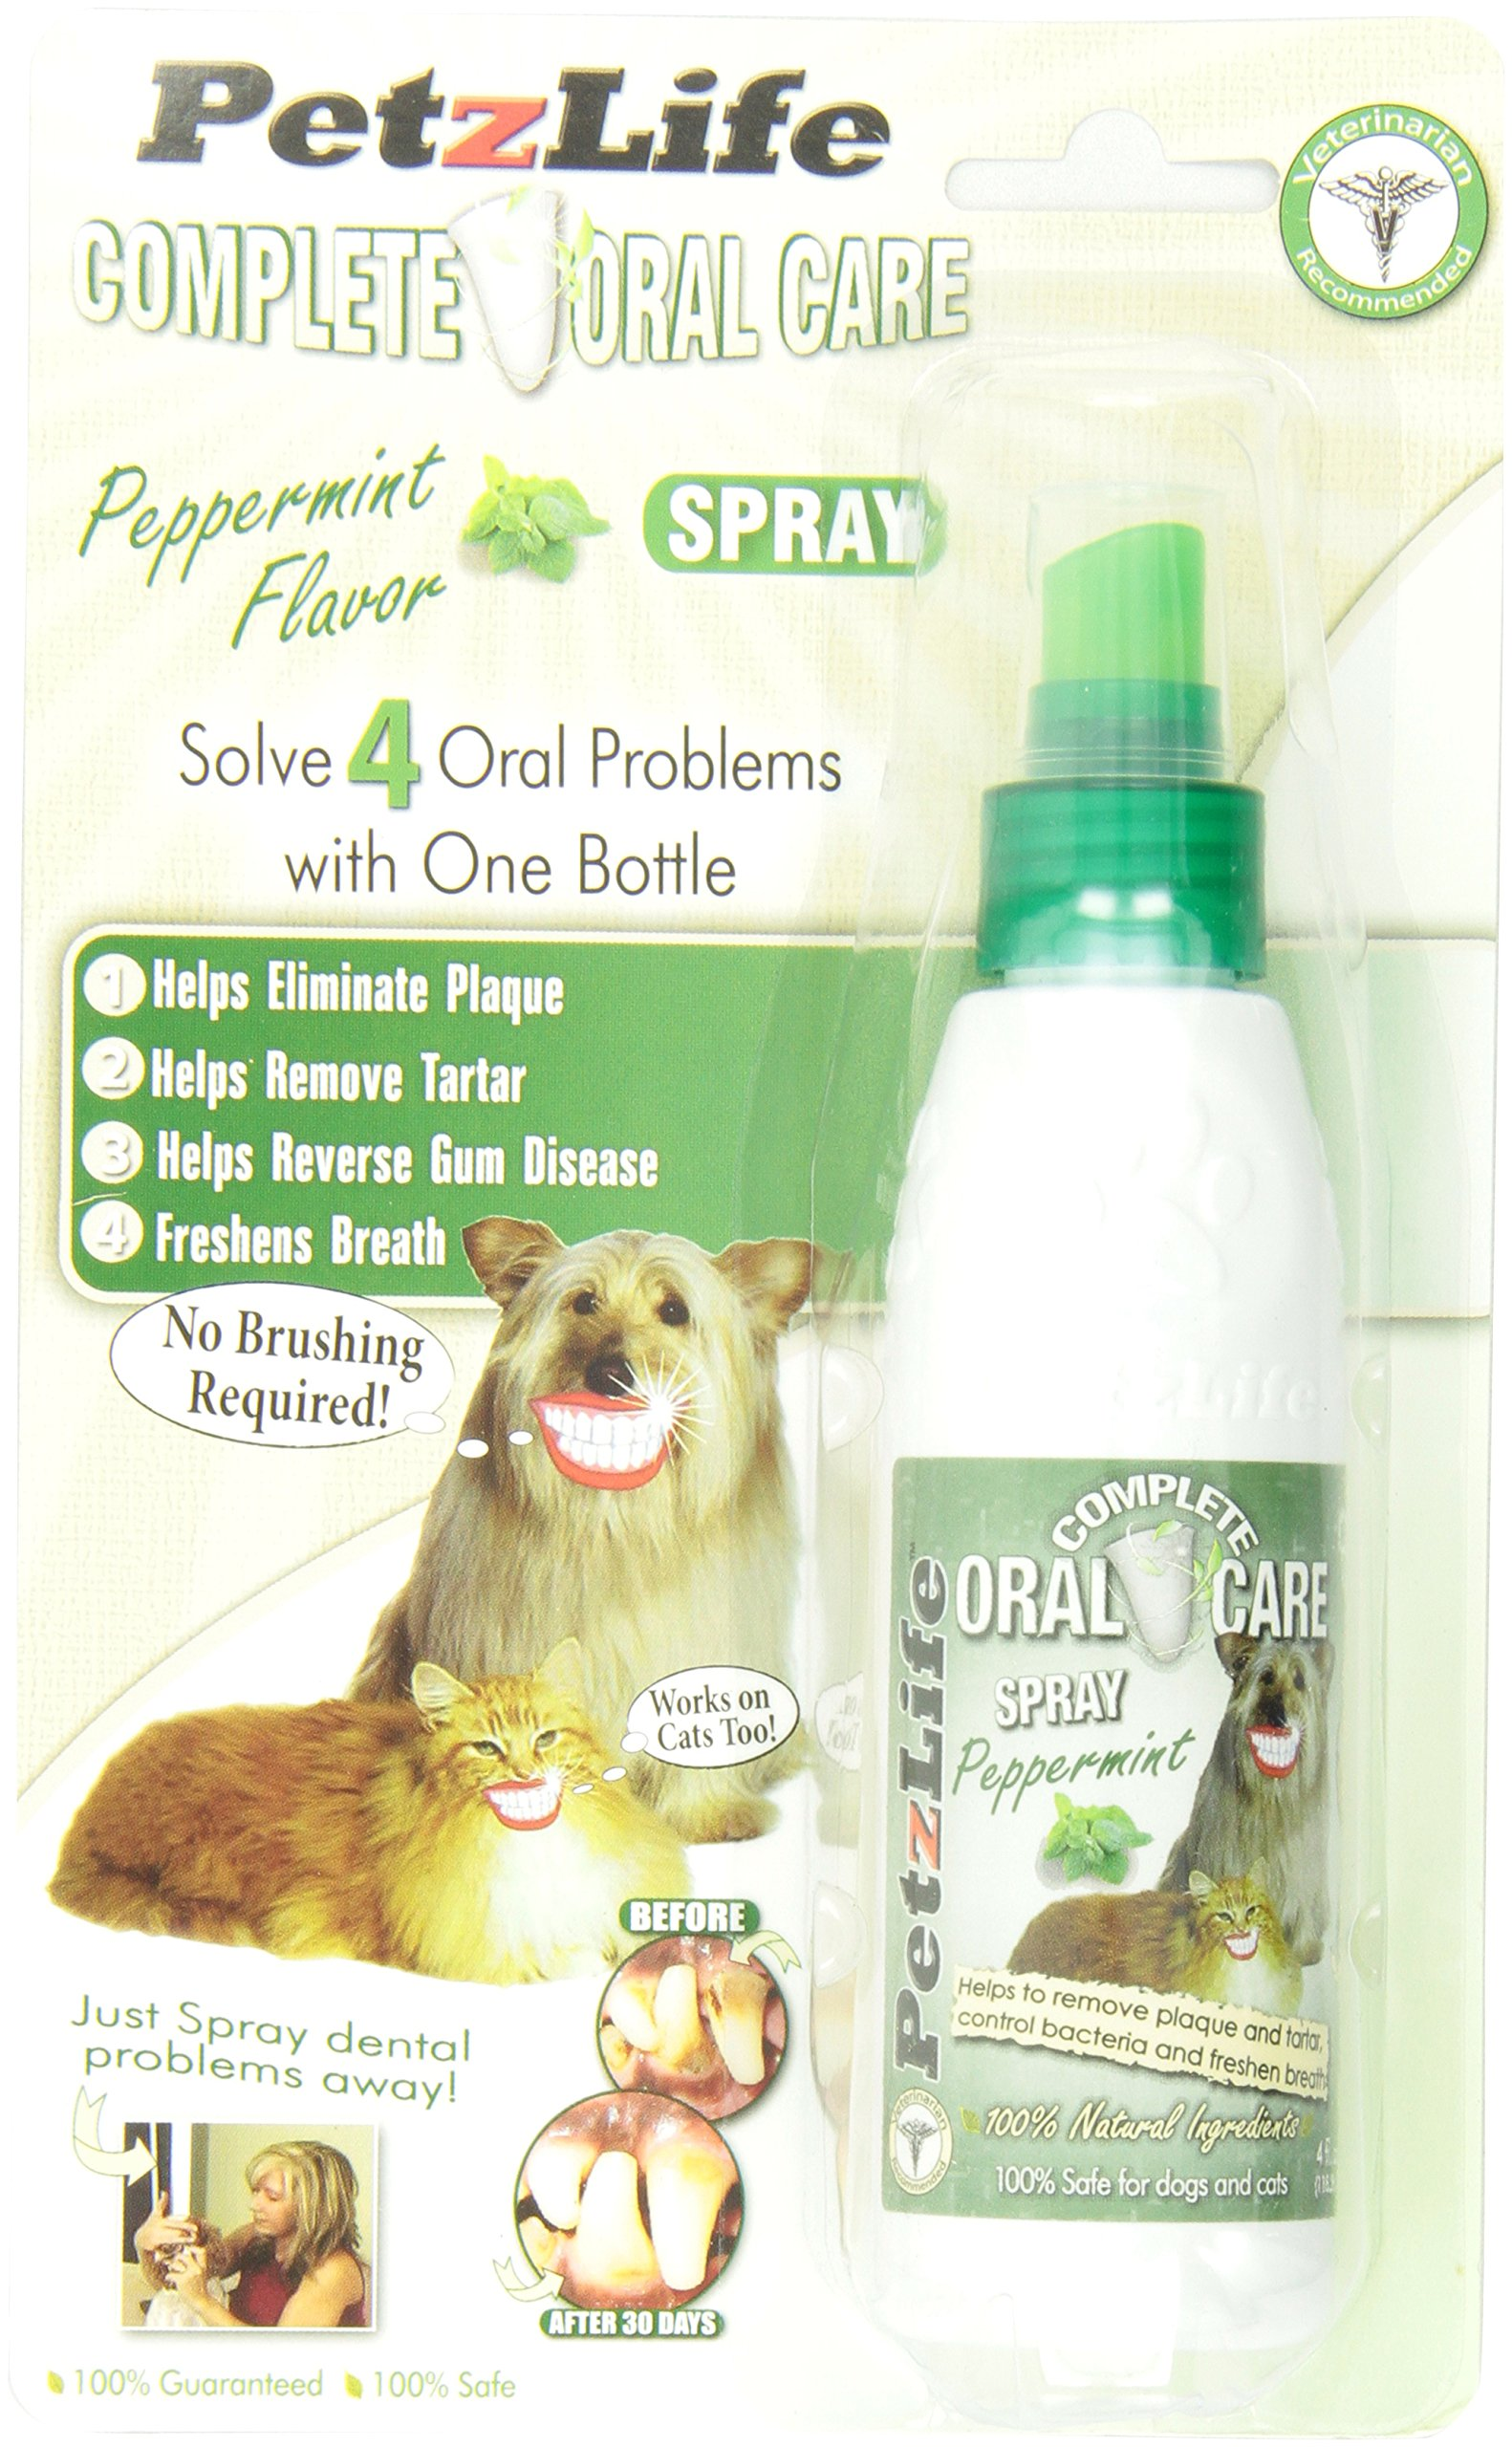 PETZLIFE 891009 Complete Oral Care Spray Peppermint Blister-Package for Pets, 4-Ounce